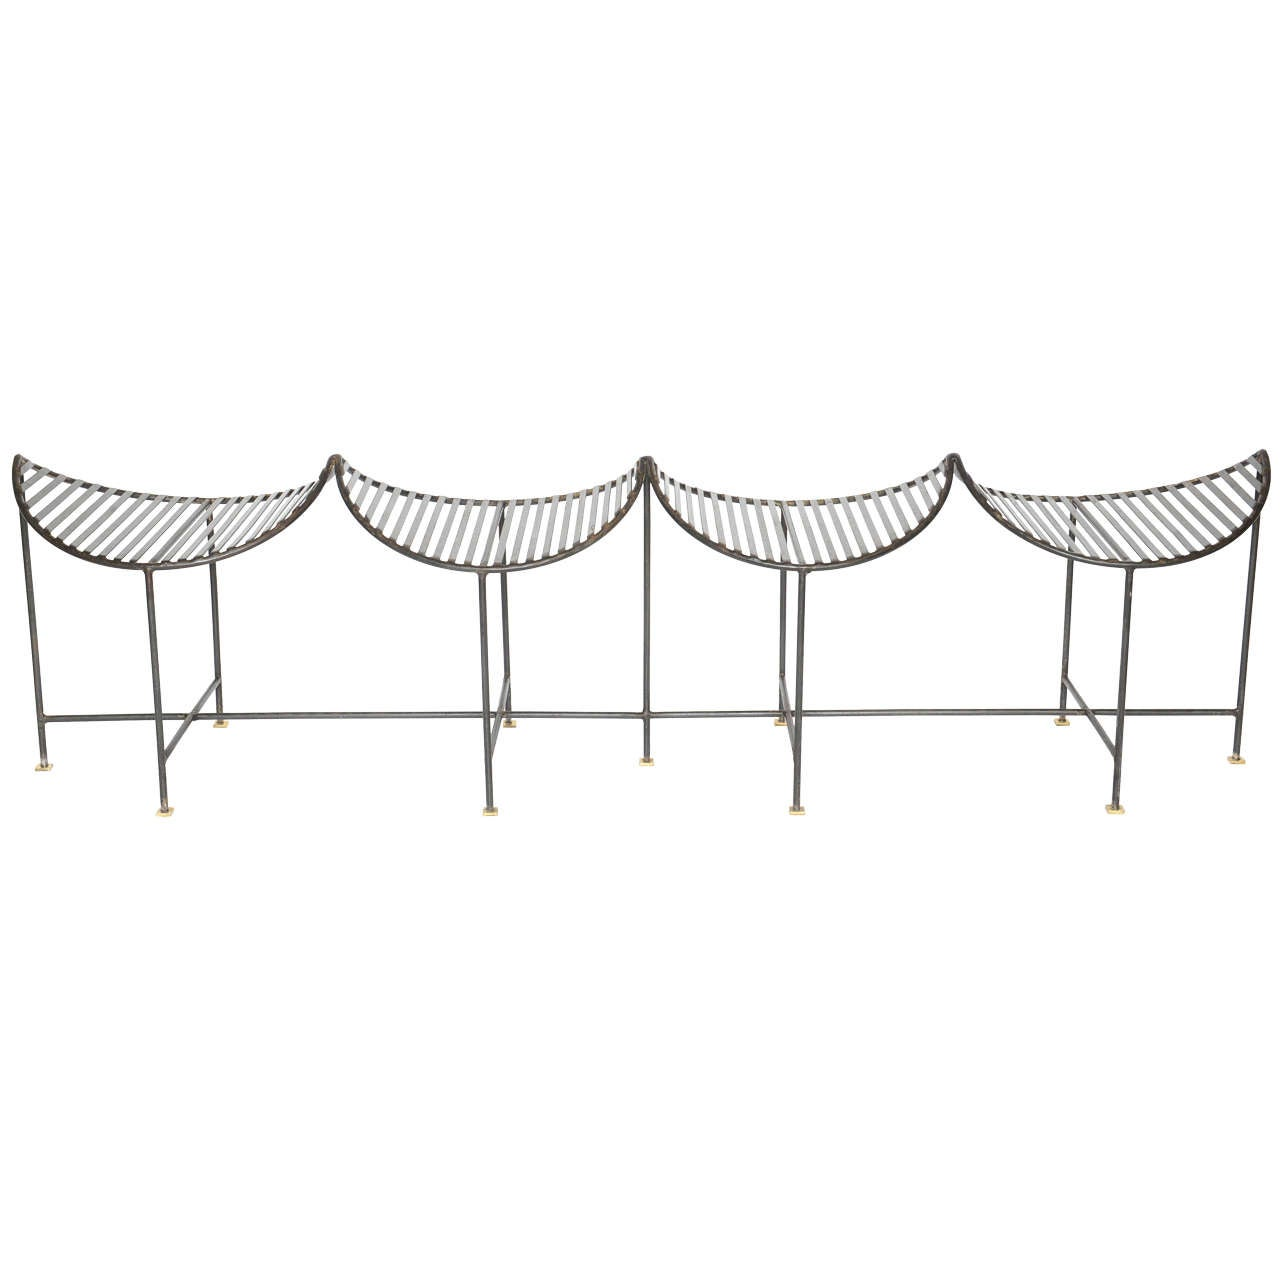 Extra-Long Four-Seat Slatted Iron Bench